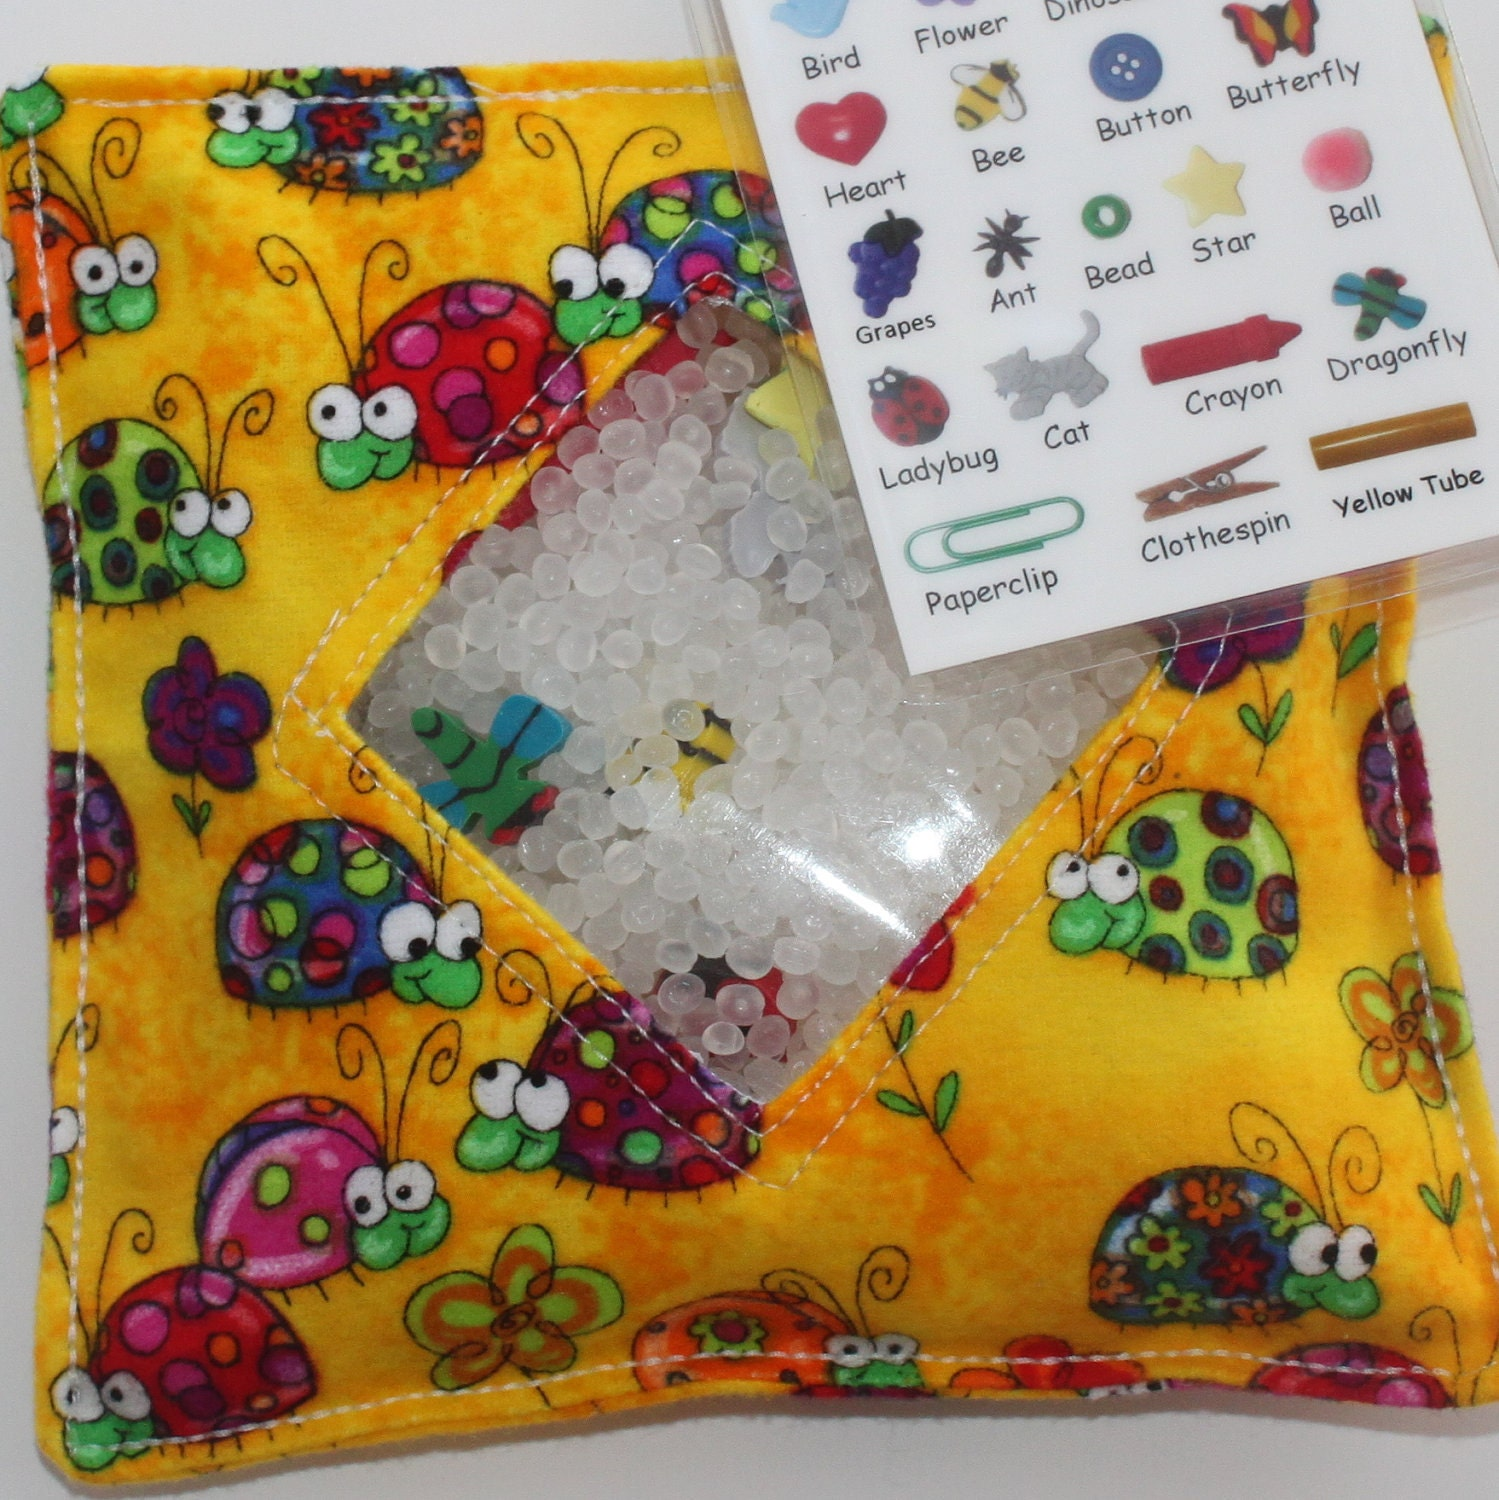 I Spy Bag - BUGABOOS Treasure Hunt with Picture Card - All sales helps support our sports activities and summer camps.